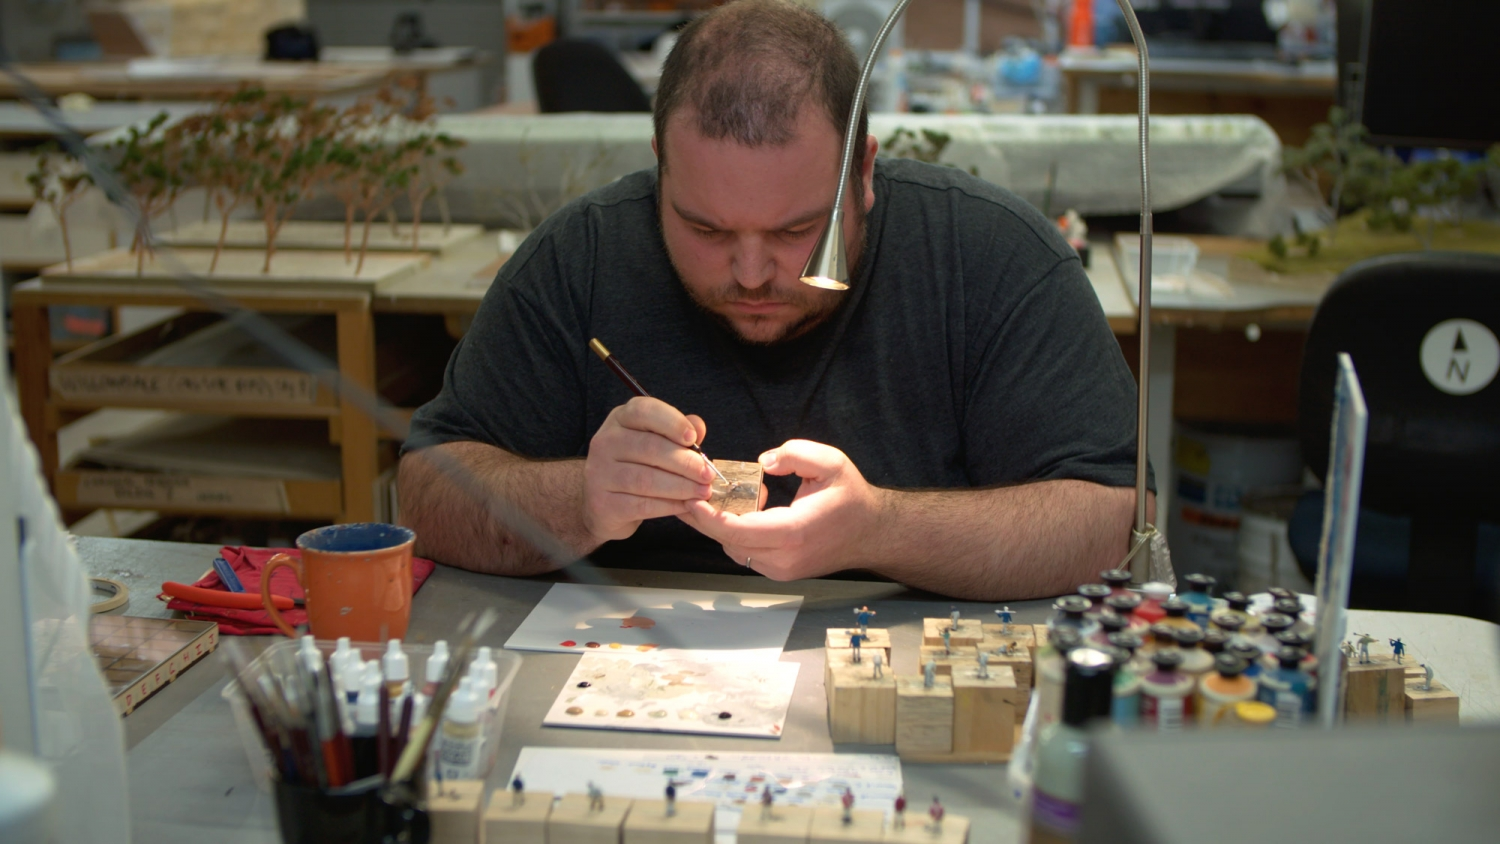 Man working on model with equipment on desk in front of him.